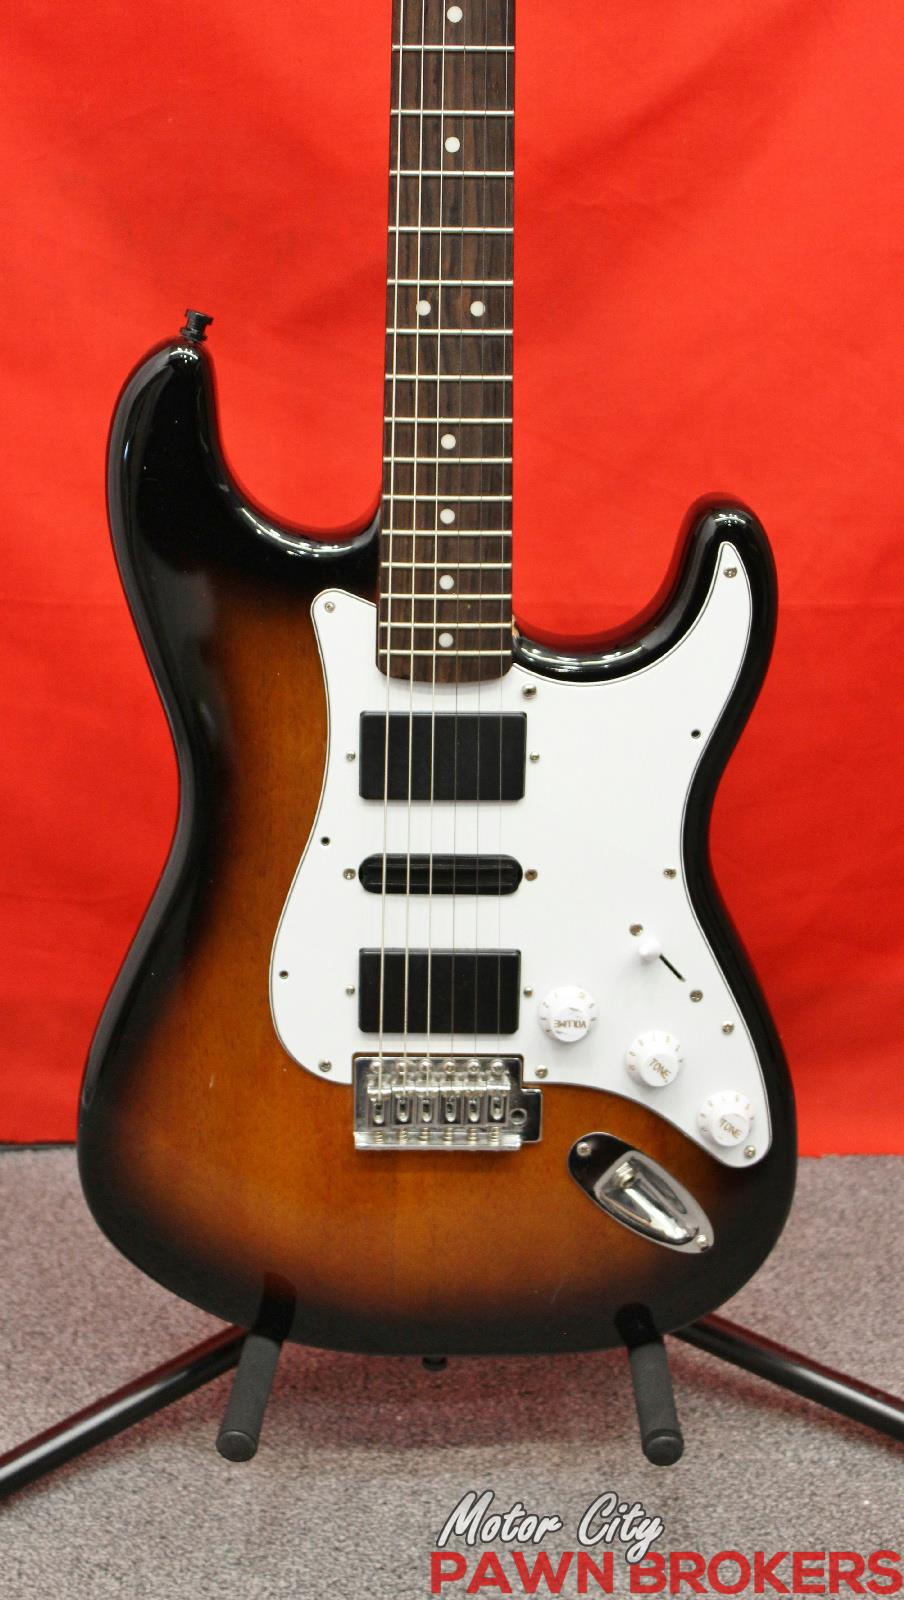 parts guitar squier neck epiphone body 6 string electric guitar as is ebay. Black Bedroom Furniture Sets. Home Design Ideas